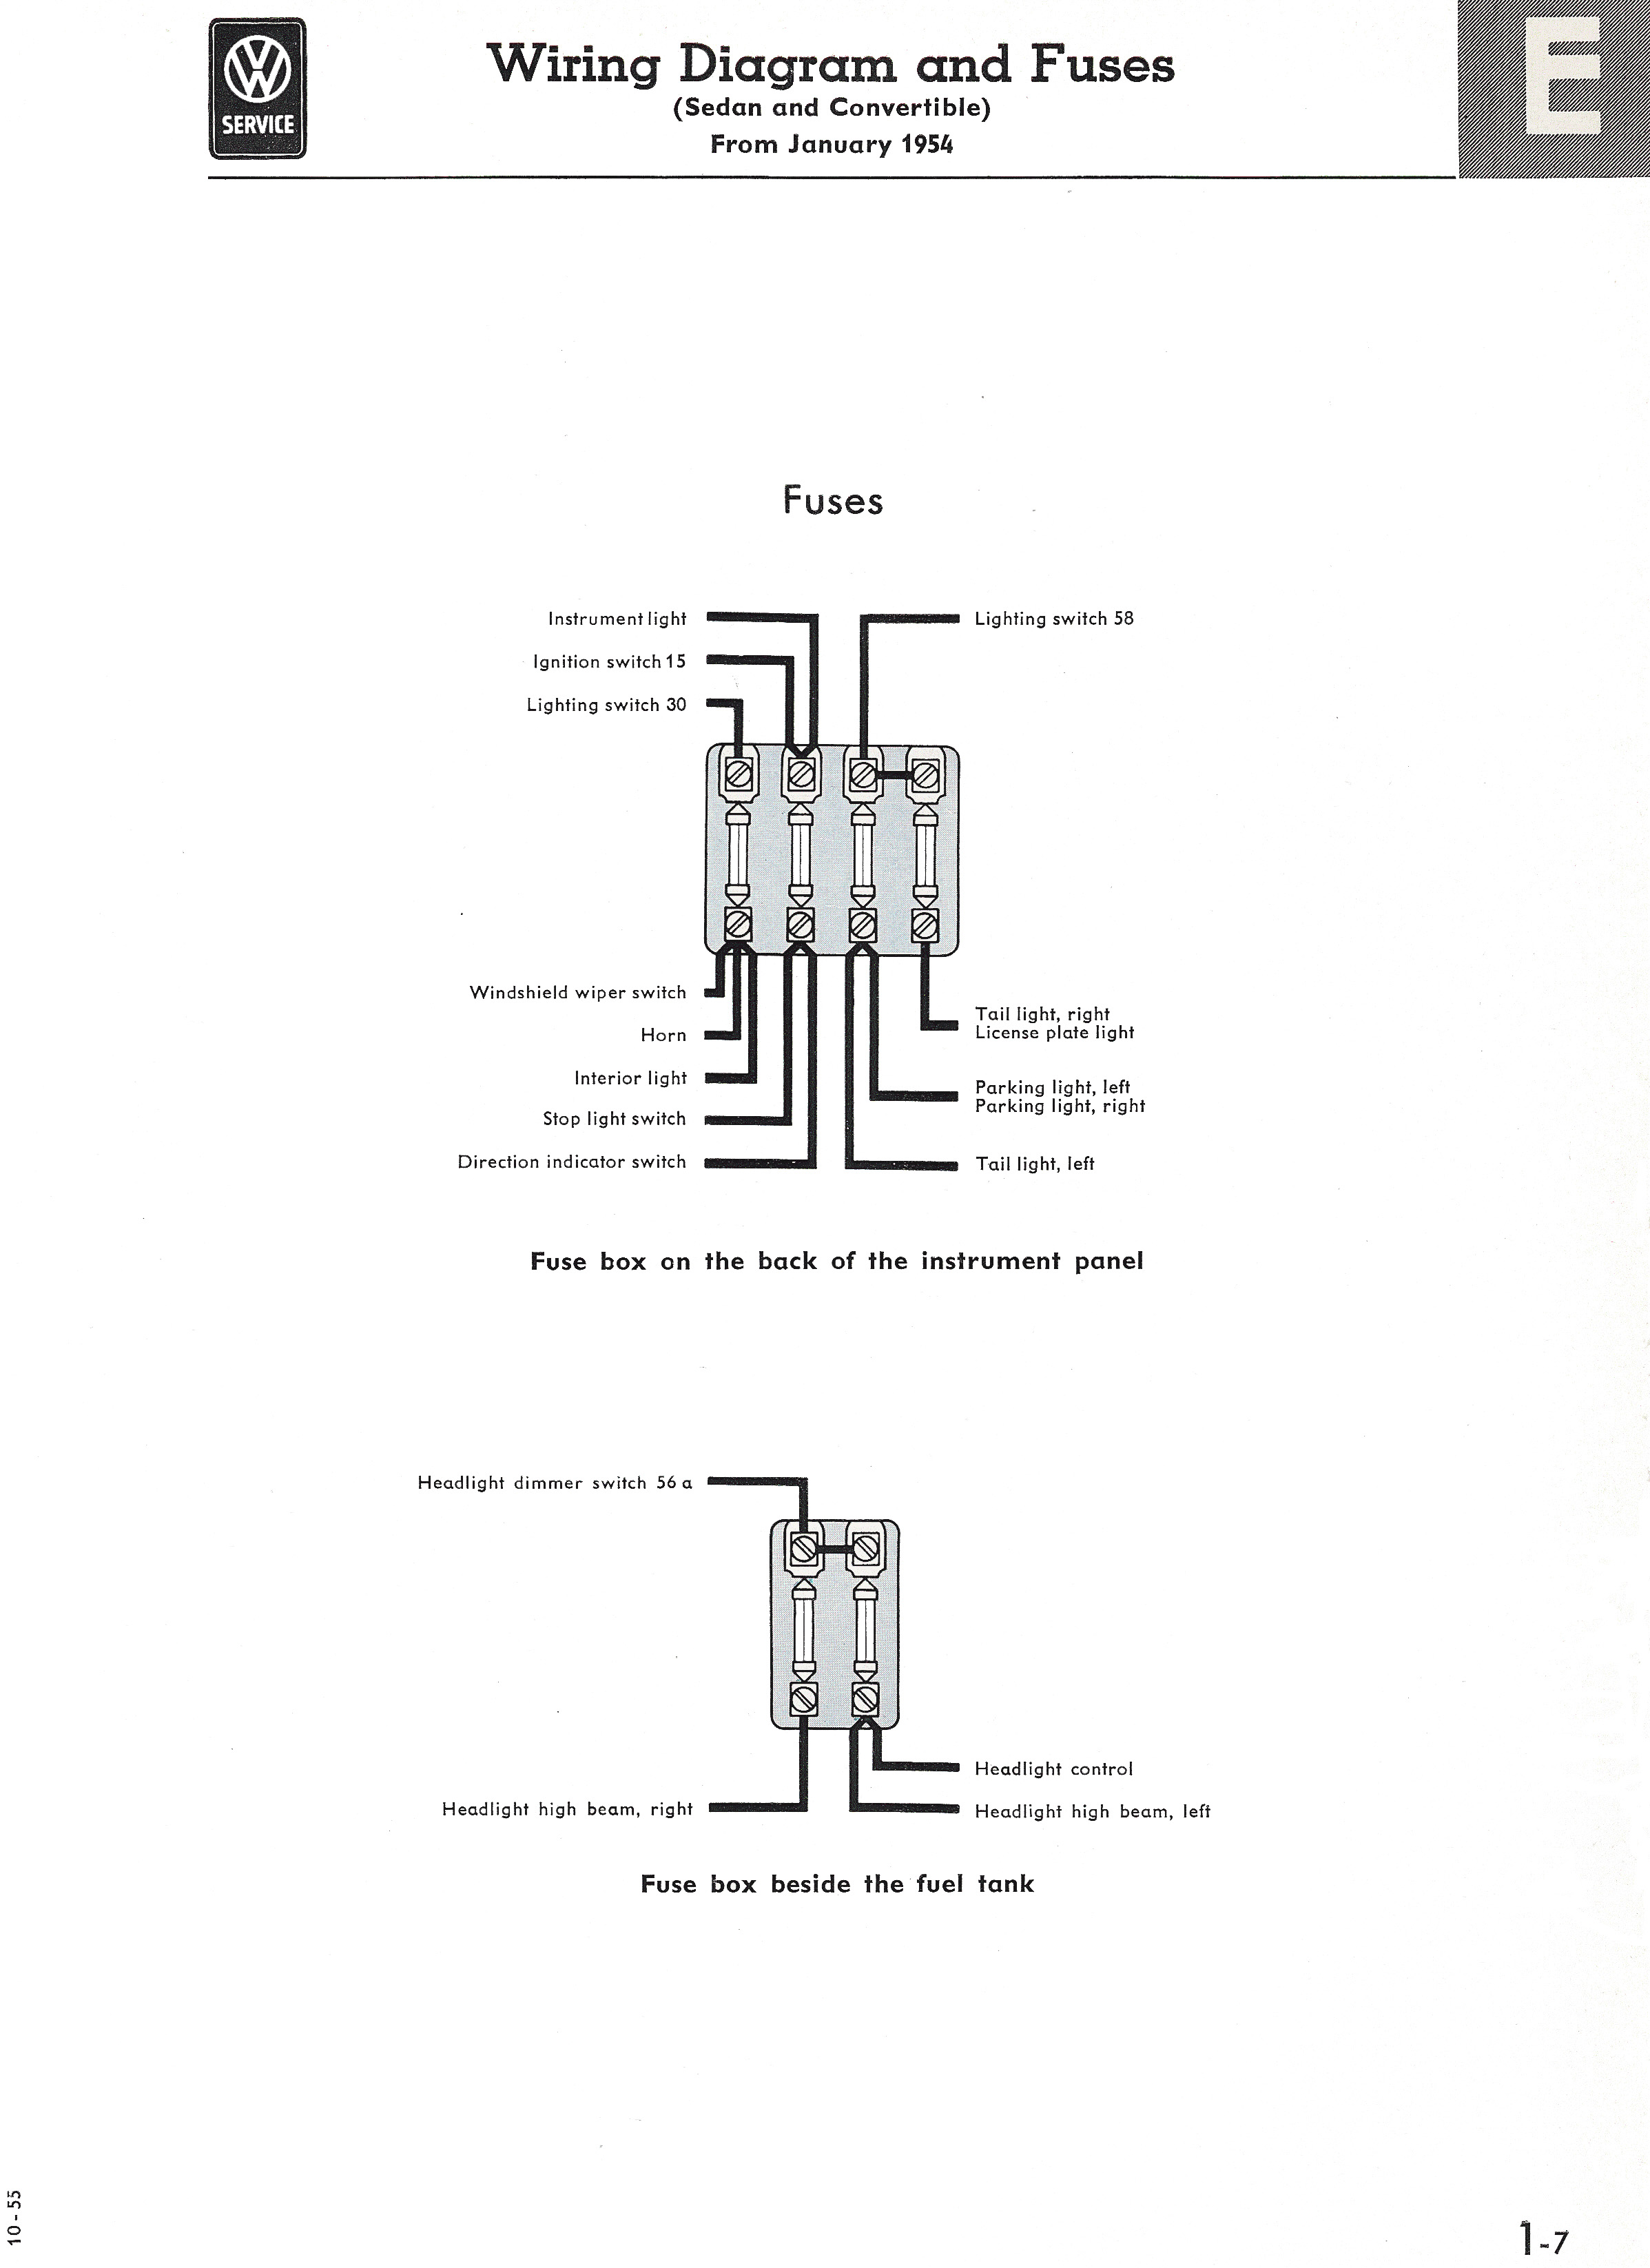 Type 1 Wiring Diagrams 1954 Corvette Diagram